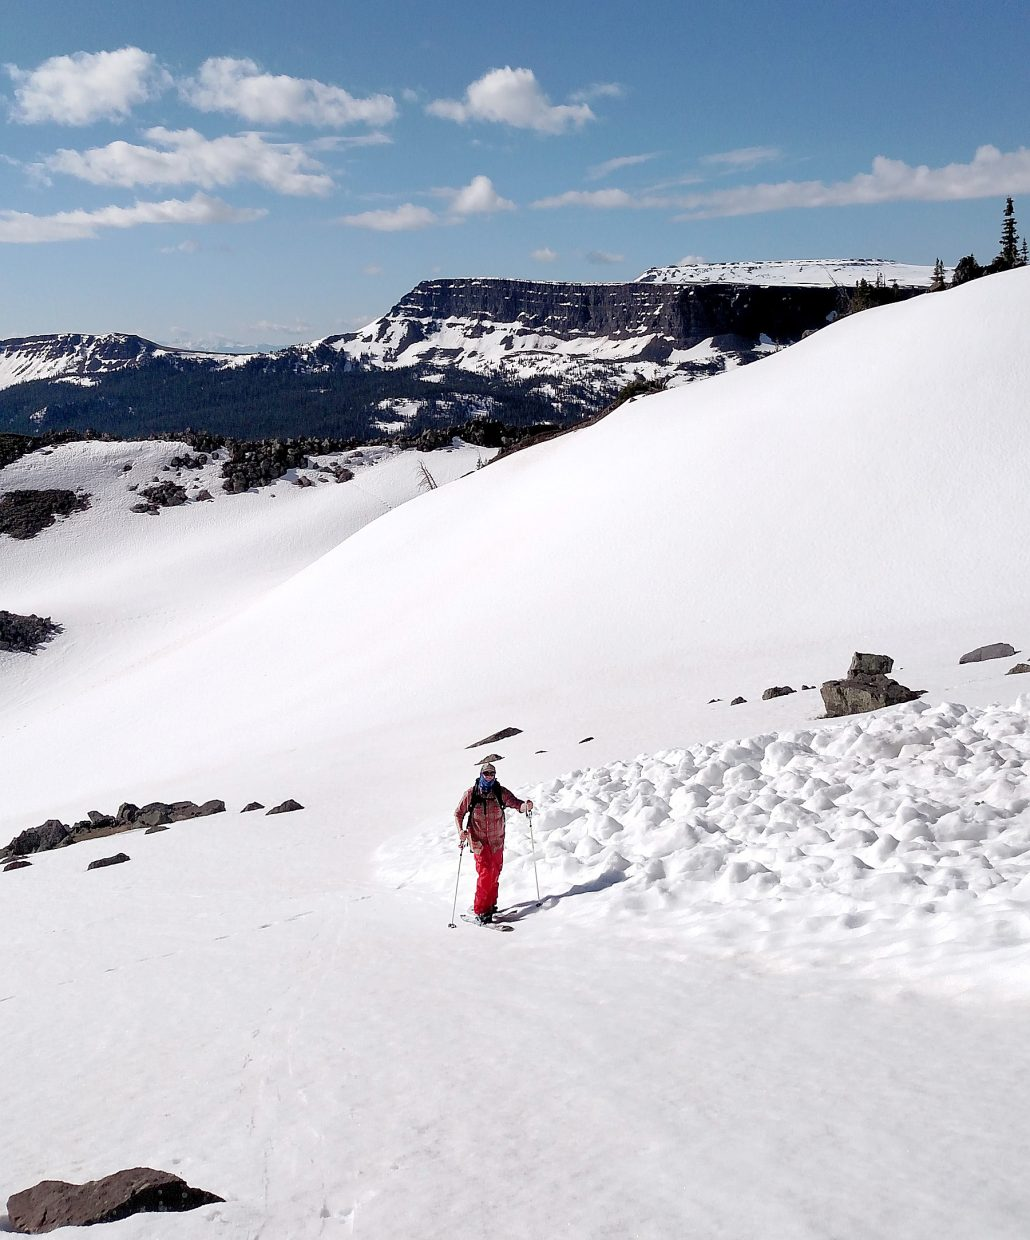 South Routt resident Brian Dudley climbs along the margin of an avalanche debris field June 7 just southeast of the Devil's Causeway cirque in the Flat Tops Wilderness Area. He and companion Matt Wood turns in the spring corn on their splitboards. Above average May precipitation had boosted snowpack in the Yampa River Basin to 98 percent of median on June 1.